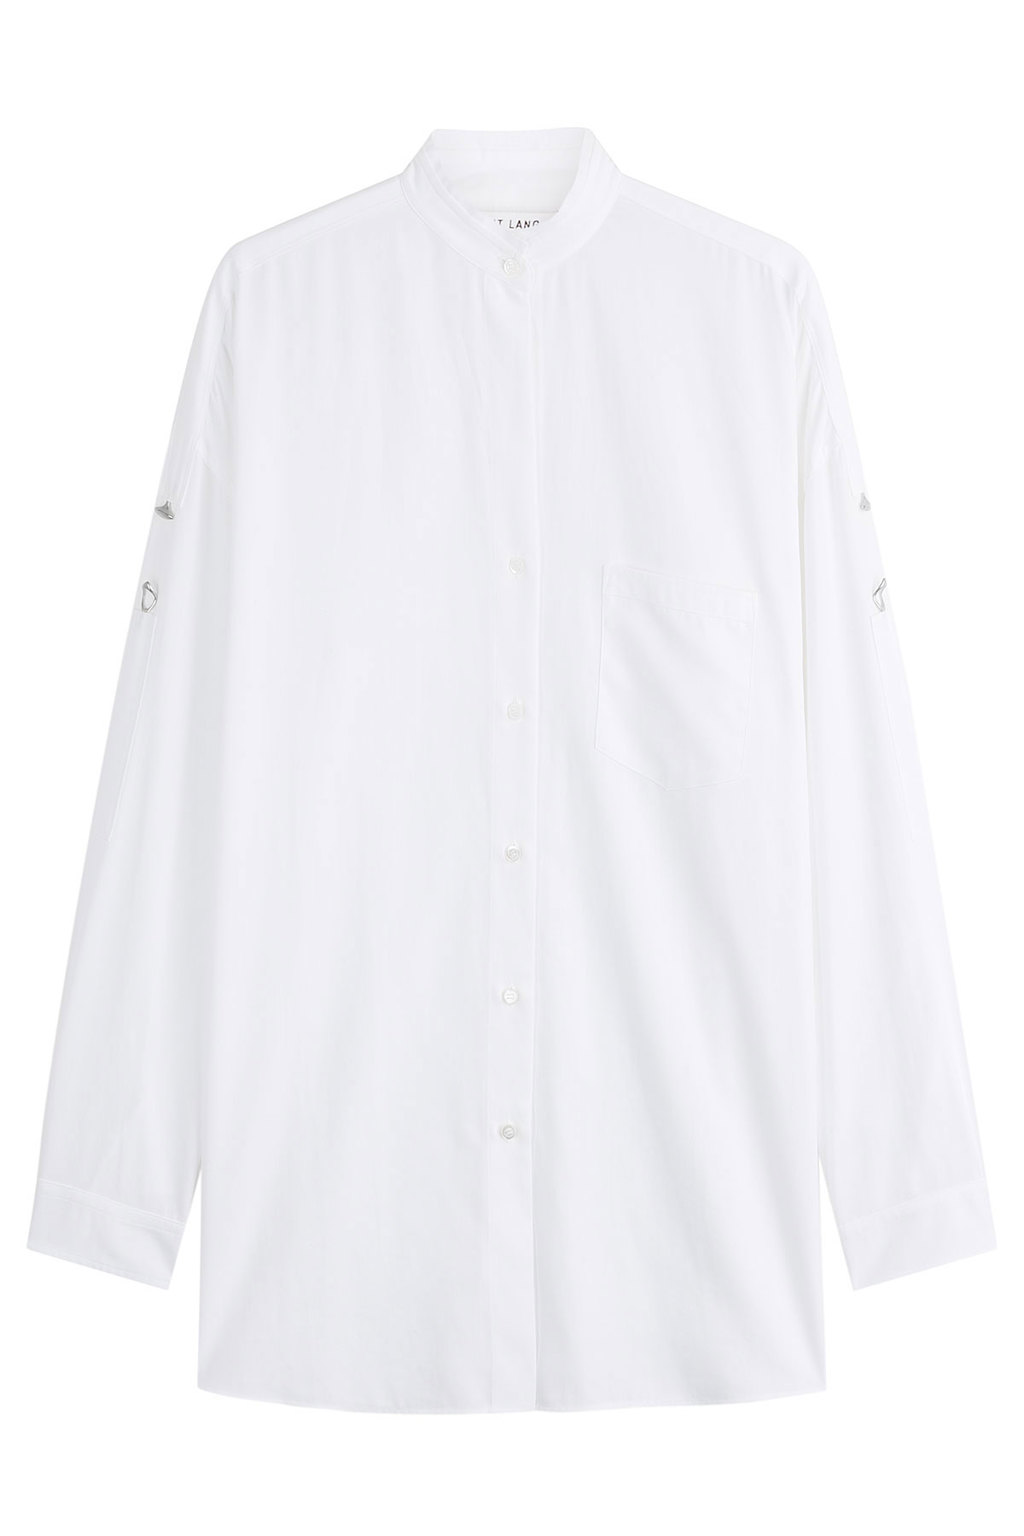 Cotton Shirt - pattern: plain; length: below the bottom; style: shirt; predominant colour: white; occasions: casual; neckline: collarstand; fibres: cotton - 100%; fit: body skimming; sleeve length: long sleeve; sleeve style: standard; texture group: cotton feel fabrics; pattern type: fabric; season: s/s 2016; wardrobe: basic